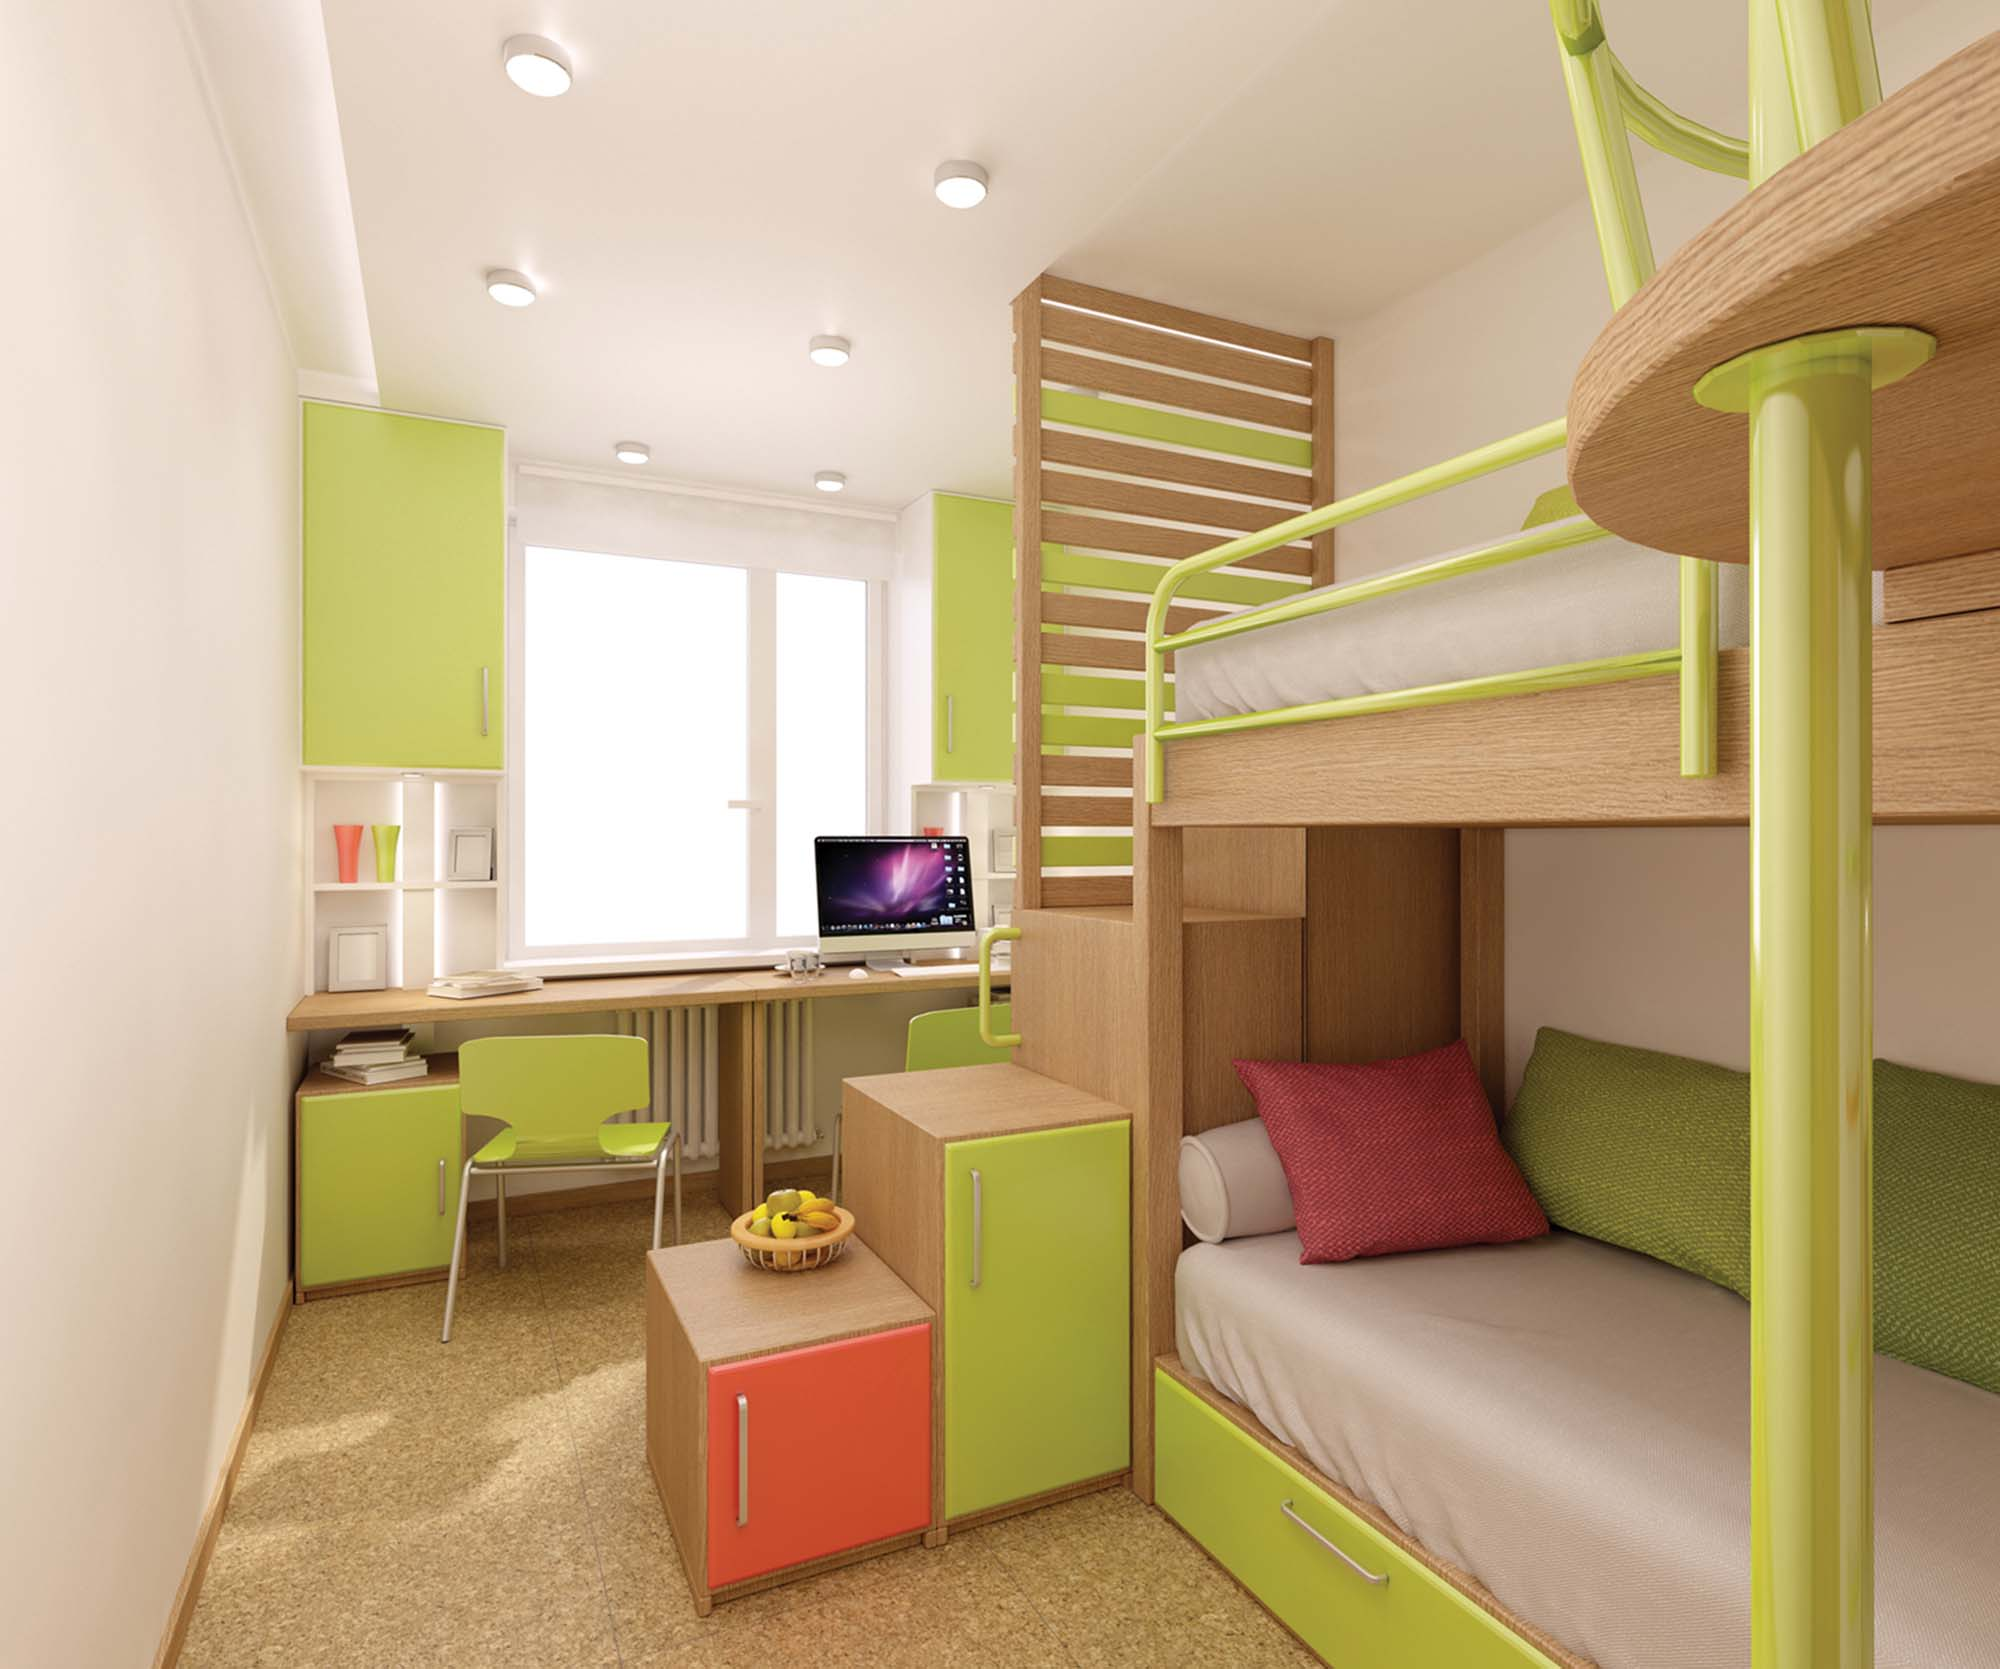 Decorating Tips for Maximizing Dorm Space